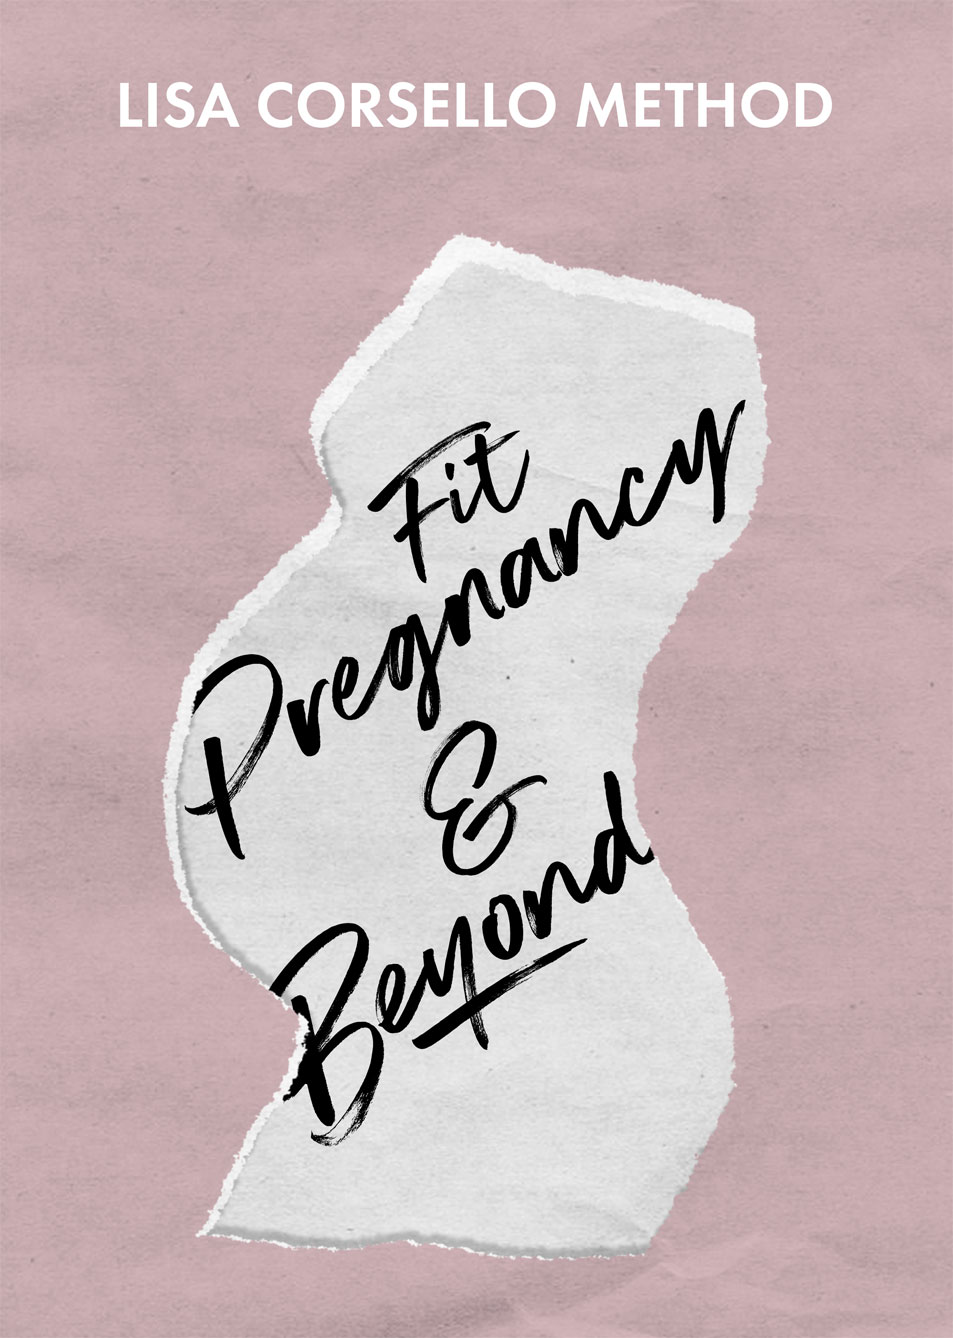 Available Now! Lisa's Pregnancy and Fitness E-book and Video Collection - You'll get honest, real talk about what's happening with your body, exercise plans, and mindset for every trimester and the 3 month period following delivery AND you'll get 4 workout videos for each stage of your pregnancy and recovery for only $9.99Click here to buy